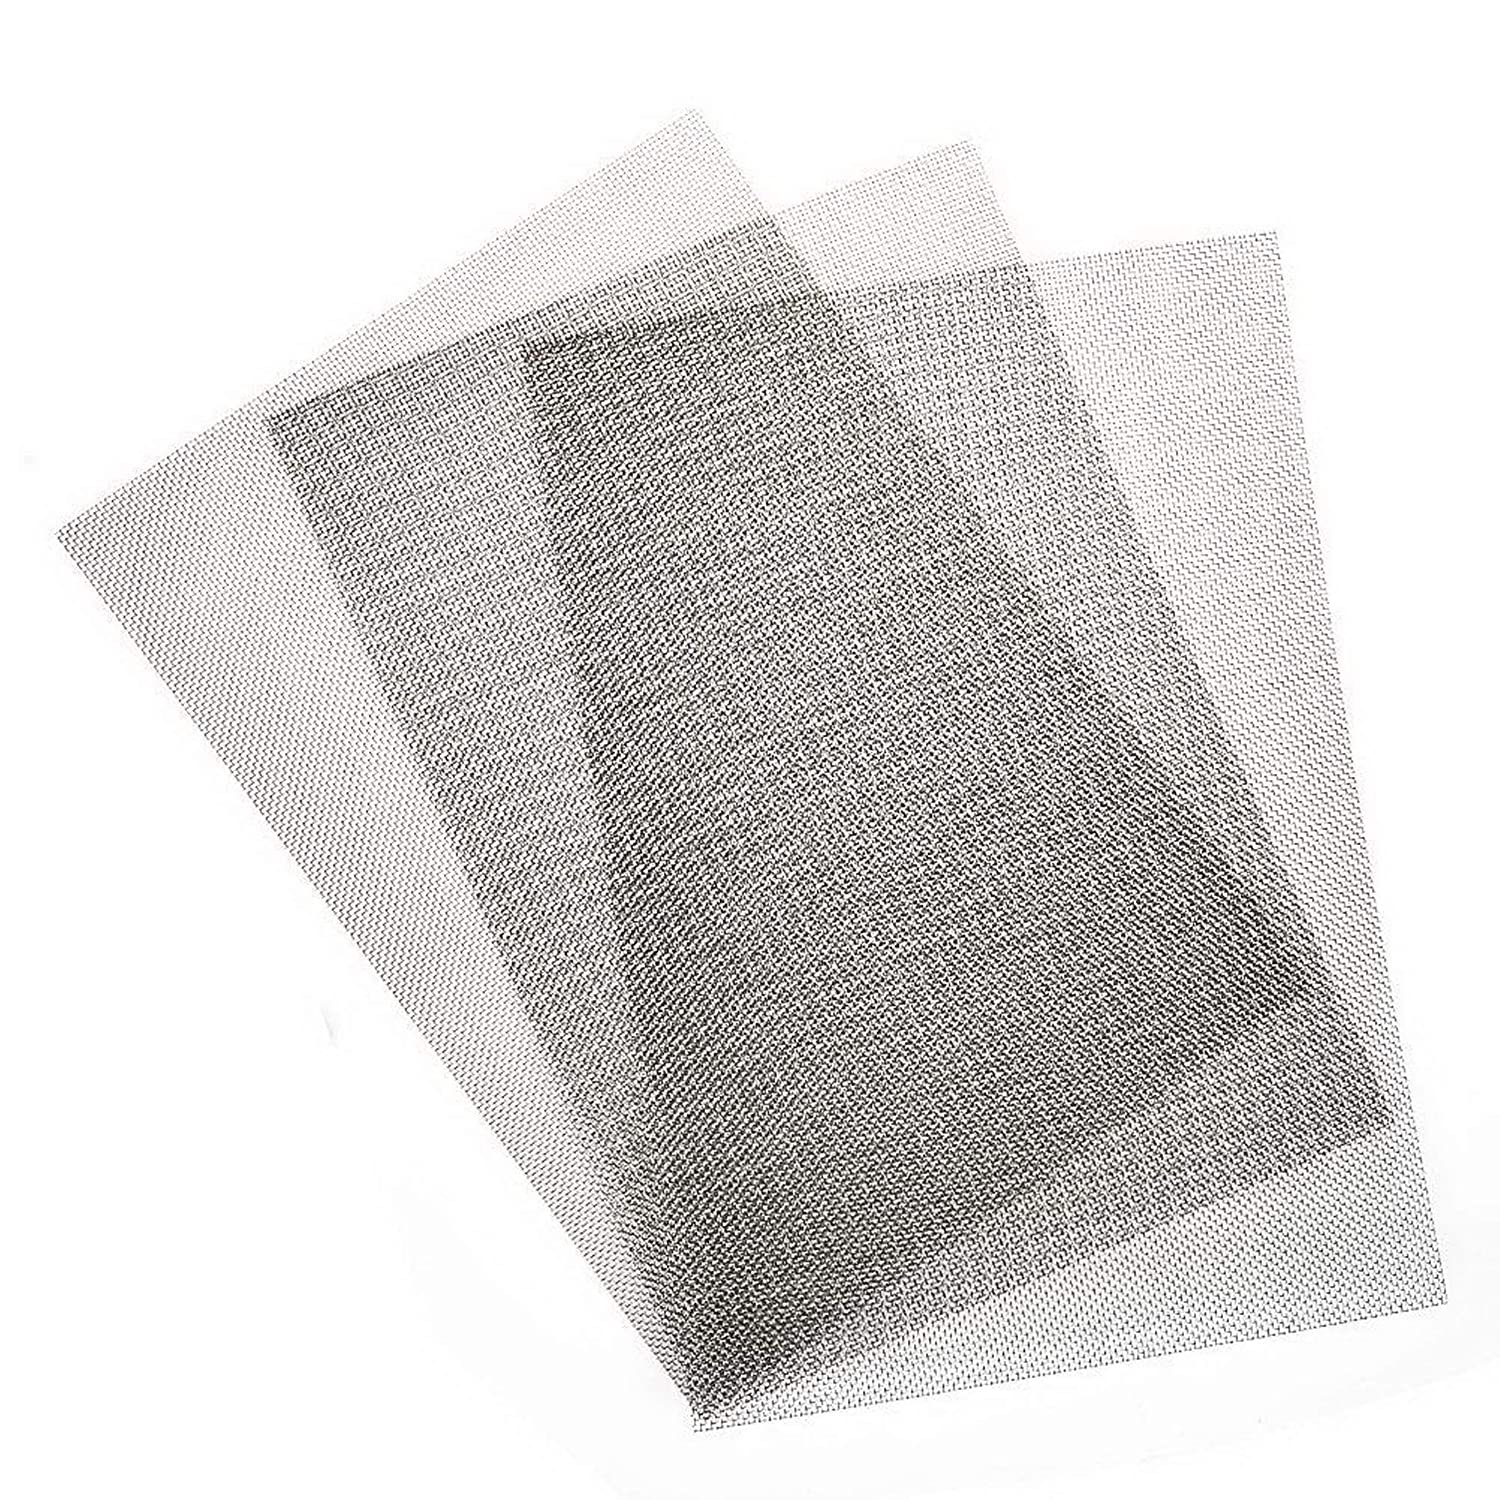 3Pack 304 Stainless Steel Woven Wire Mesh Max 53% OFF Metal Milwaukee Mall Screen 20 W